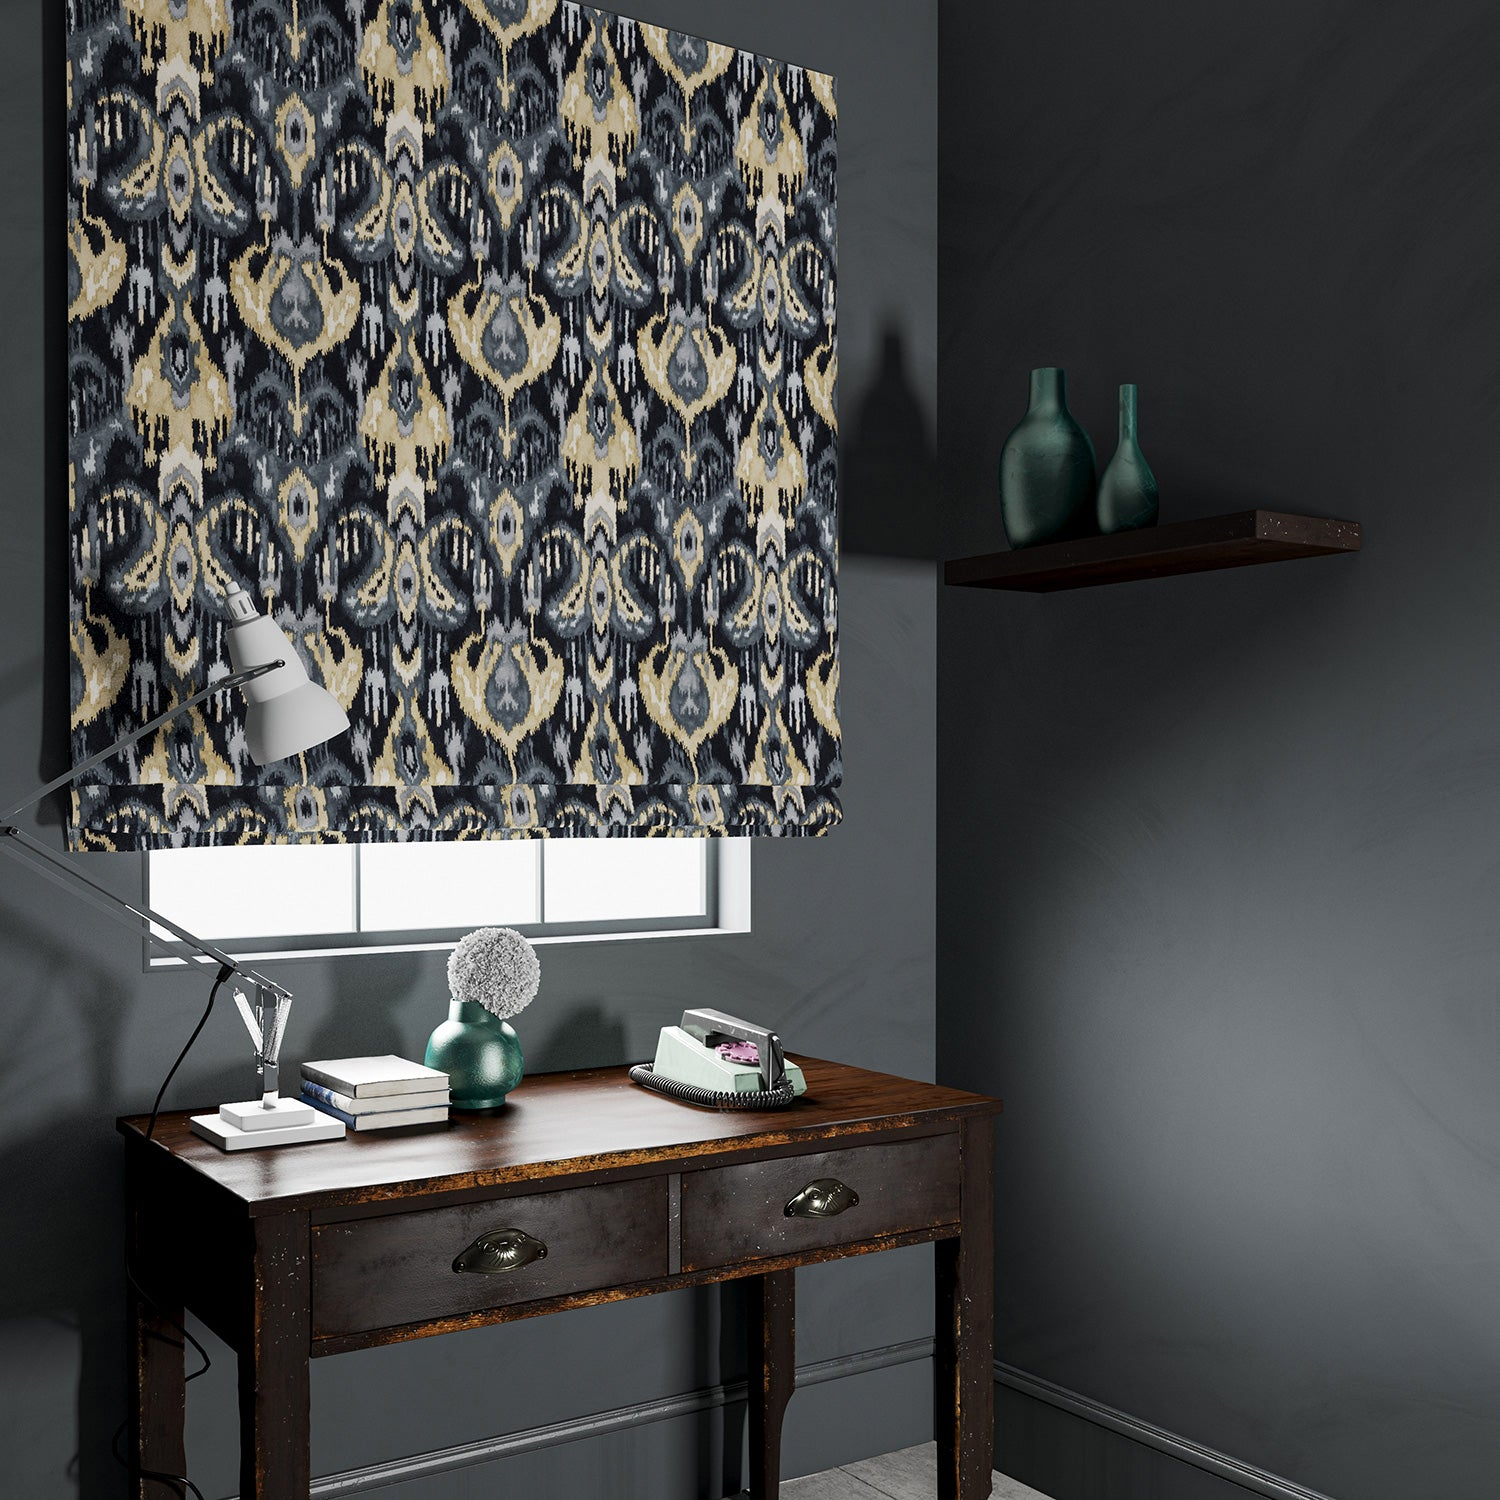 Velvet blind in a dark grey velvet fabric with contemporary abstract design